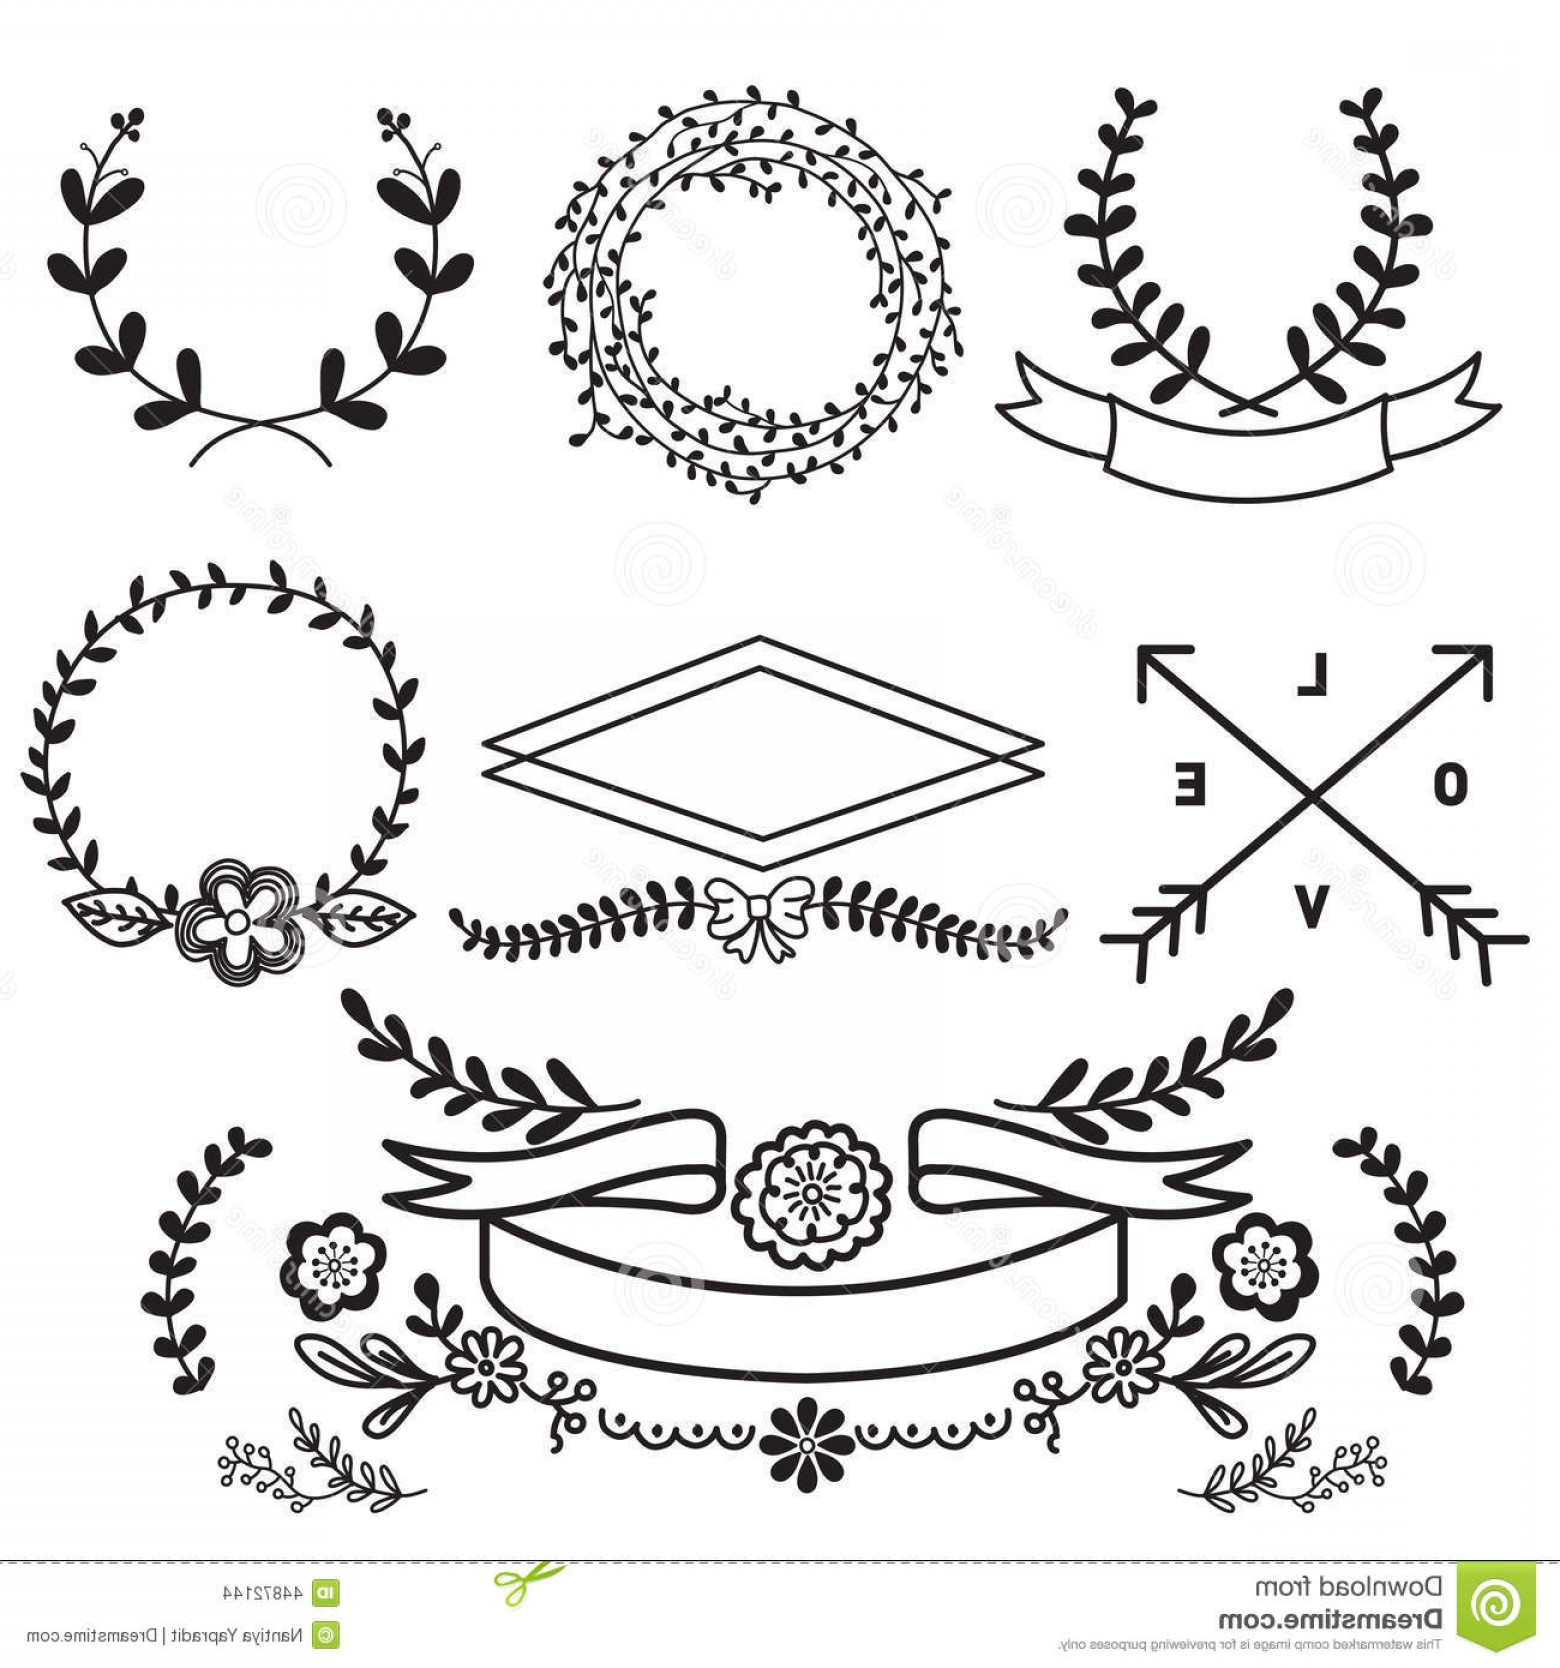 Flower Elements Vector: Stock Illustration Vector Set Floral Elements Banners Vintage Nature Flower Image